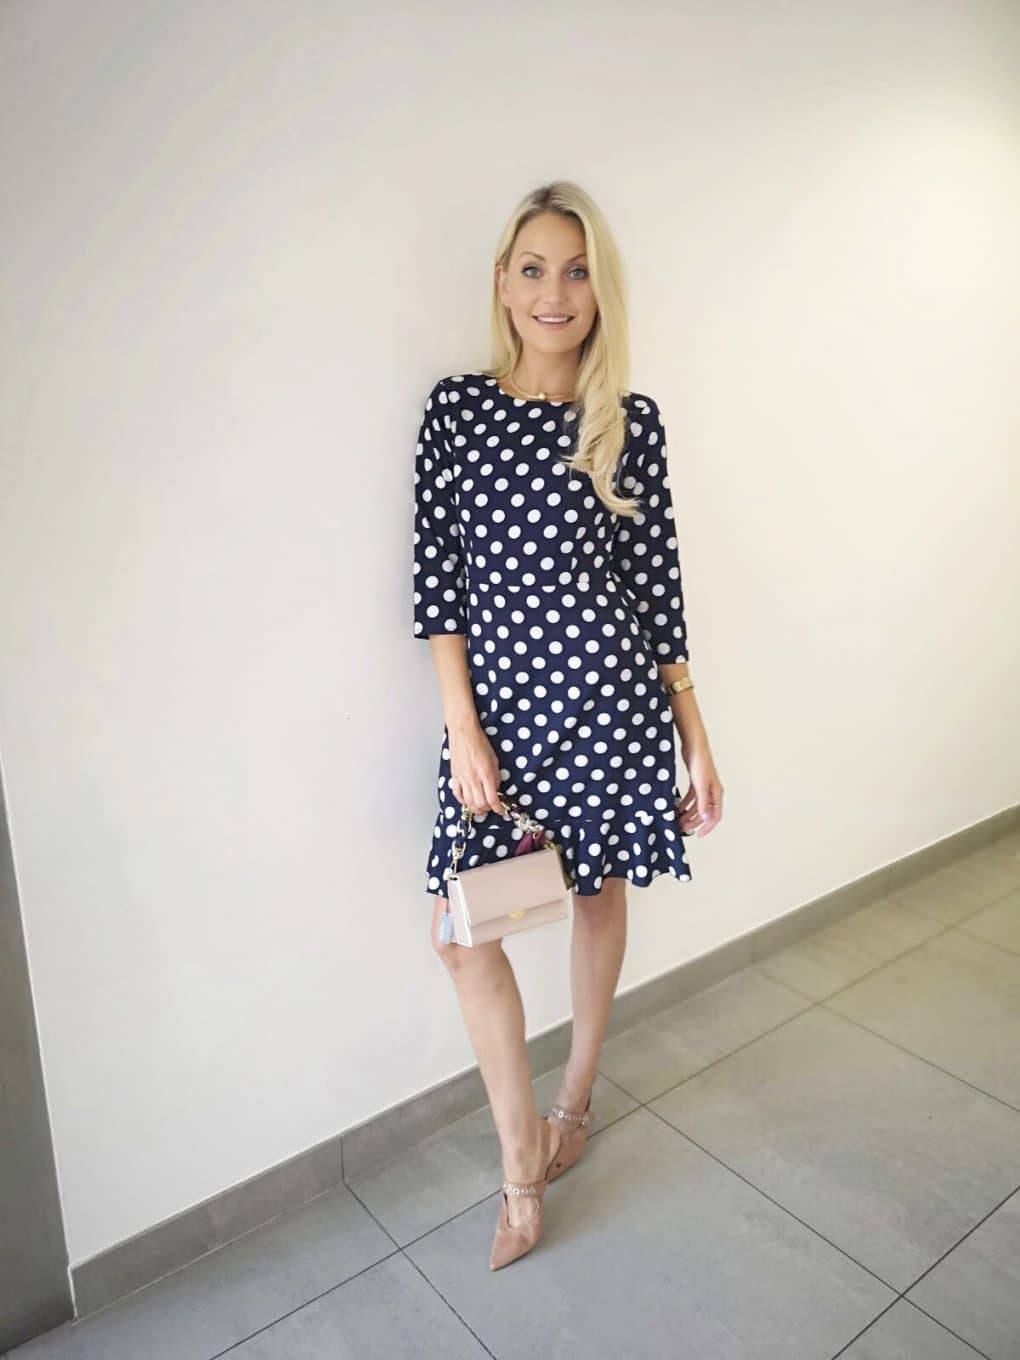 Danity-Navy-Polka-Dot-Dress-Ireland-Am-Alila